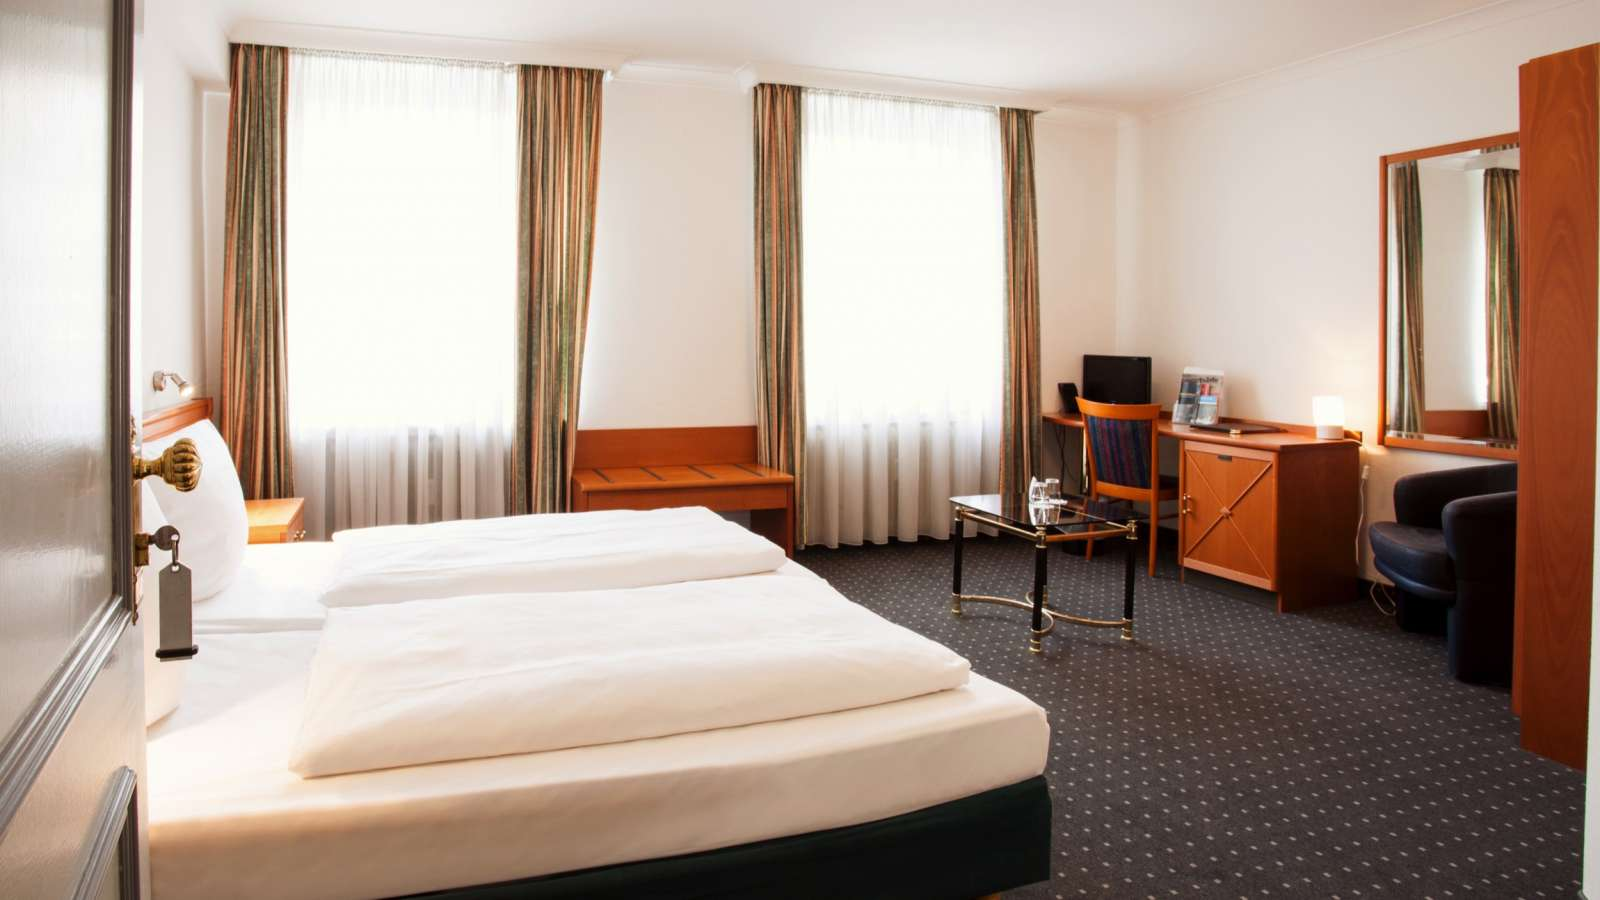 A double room at Centro Hotel Royal in Cologne